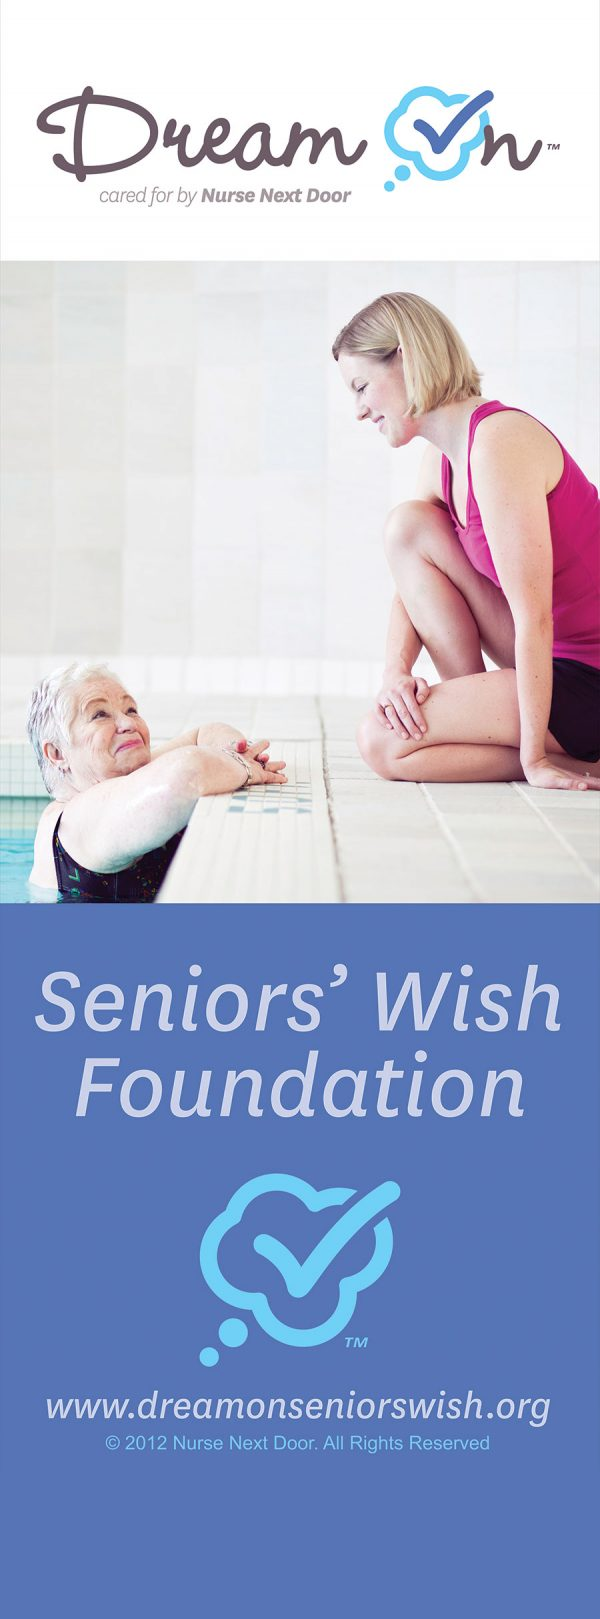 dreamonseniorswish_full